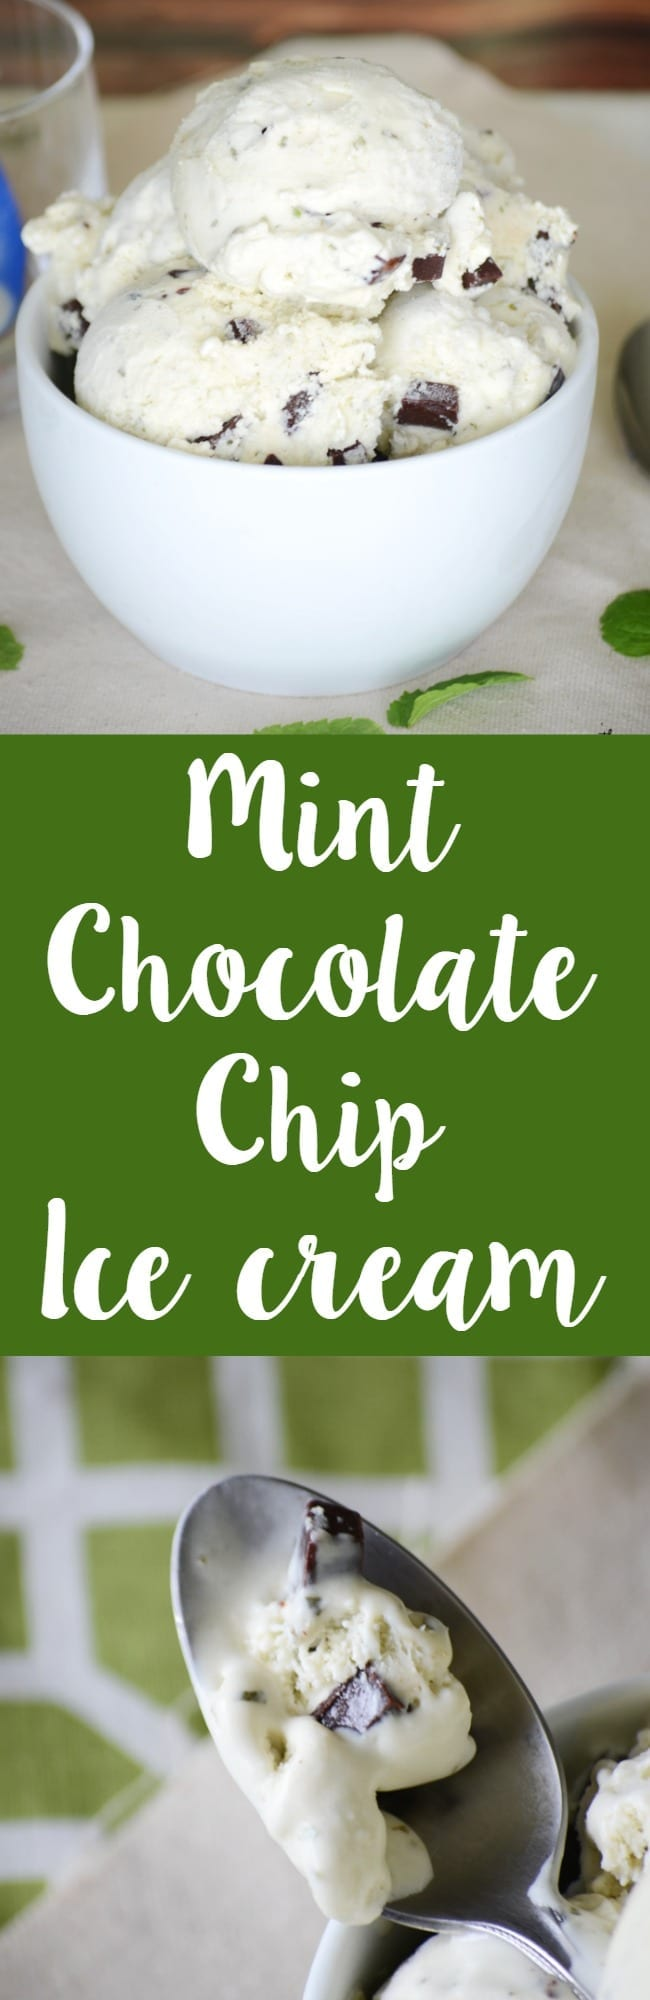 Homemade mint chocolate chip ice cream! Made with real mint